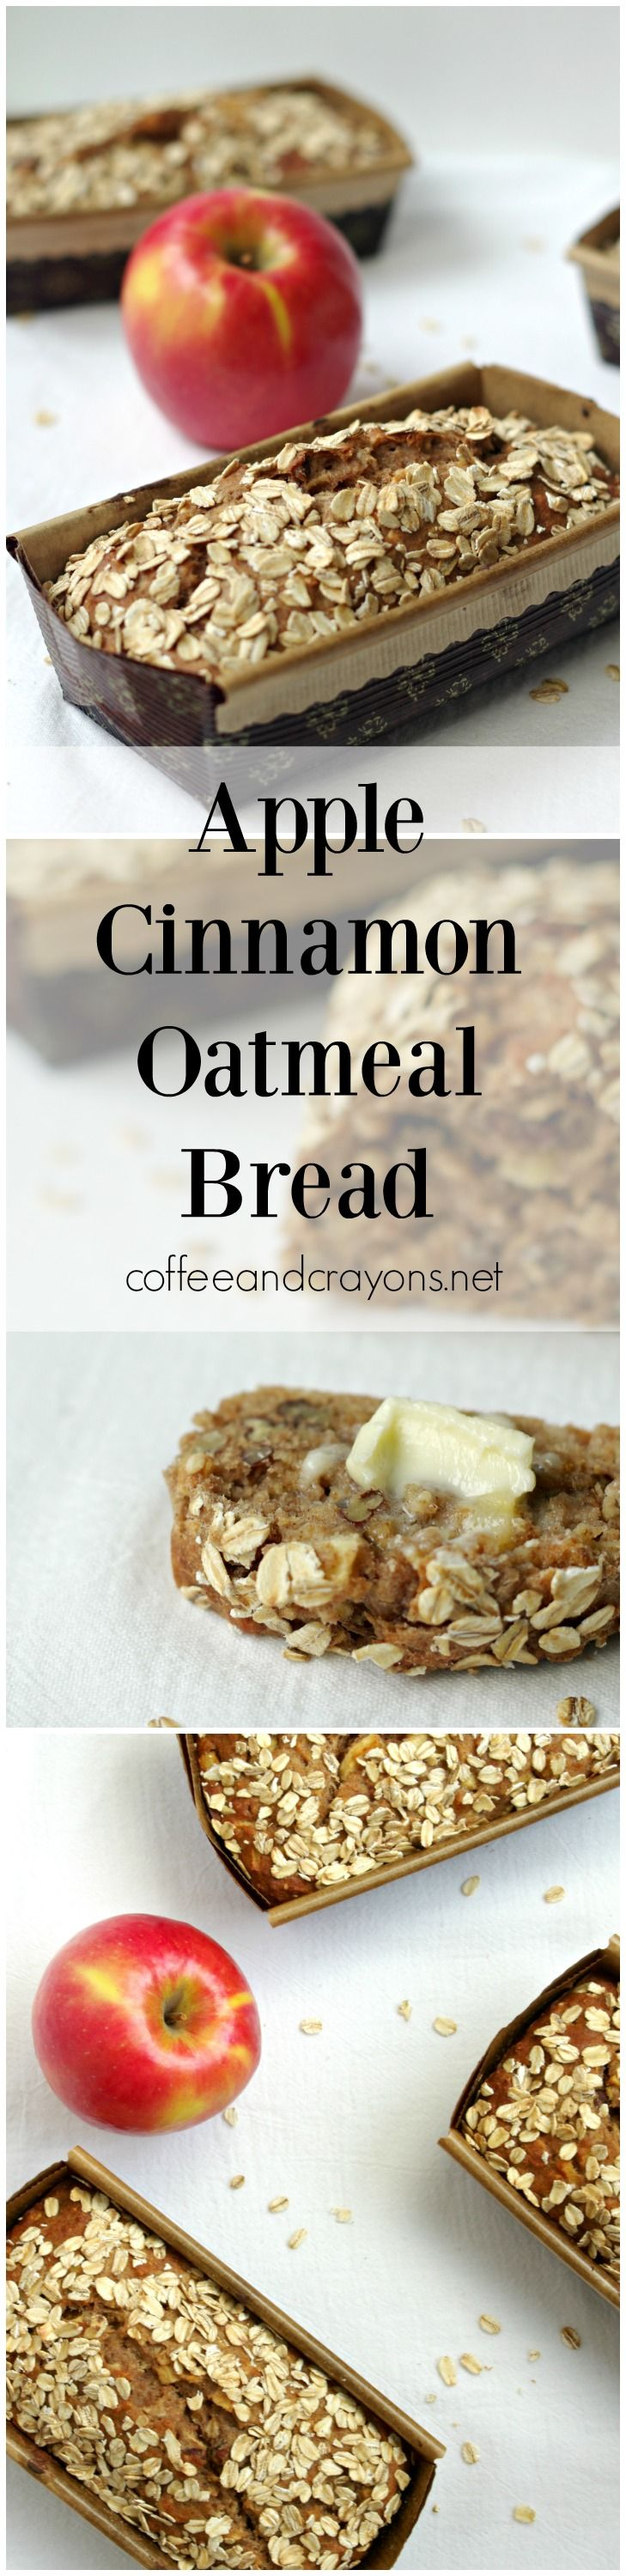 Apple Cinnamon Oatmeal Bread | Butter, Apple cinnamon and Oatmeal ...